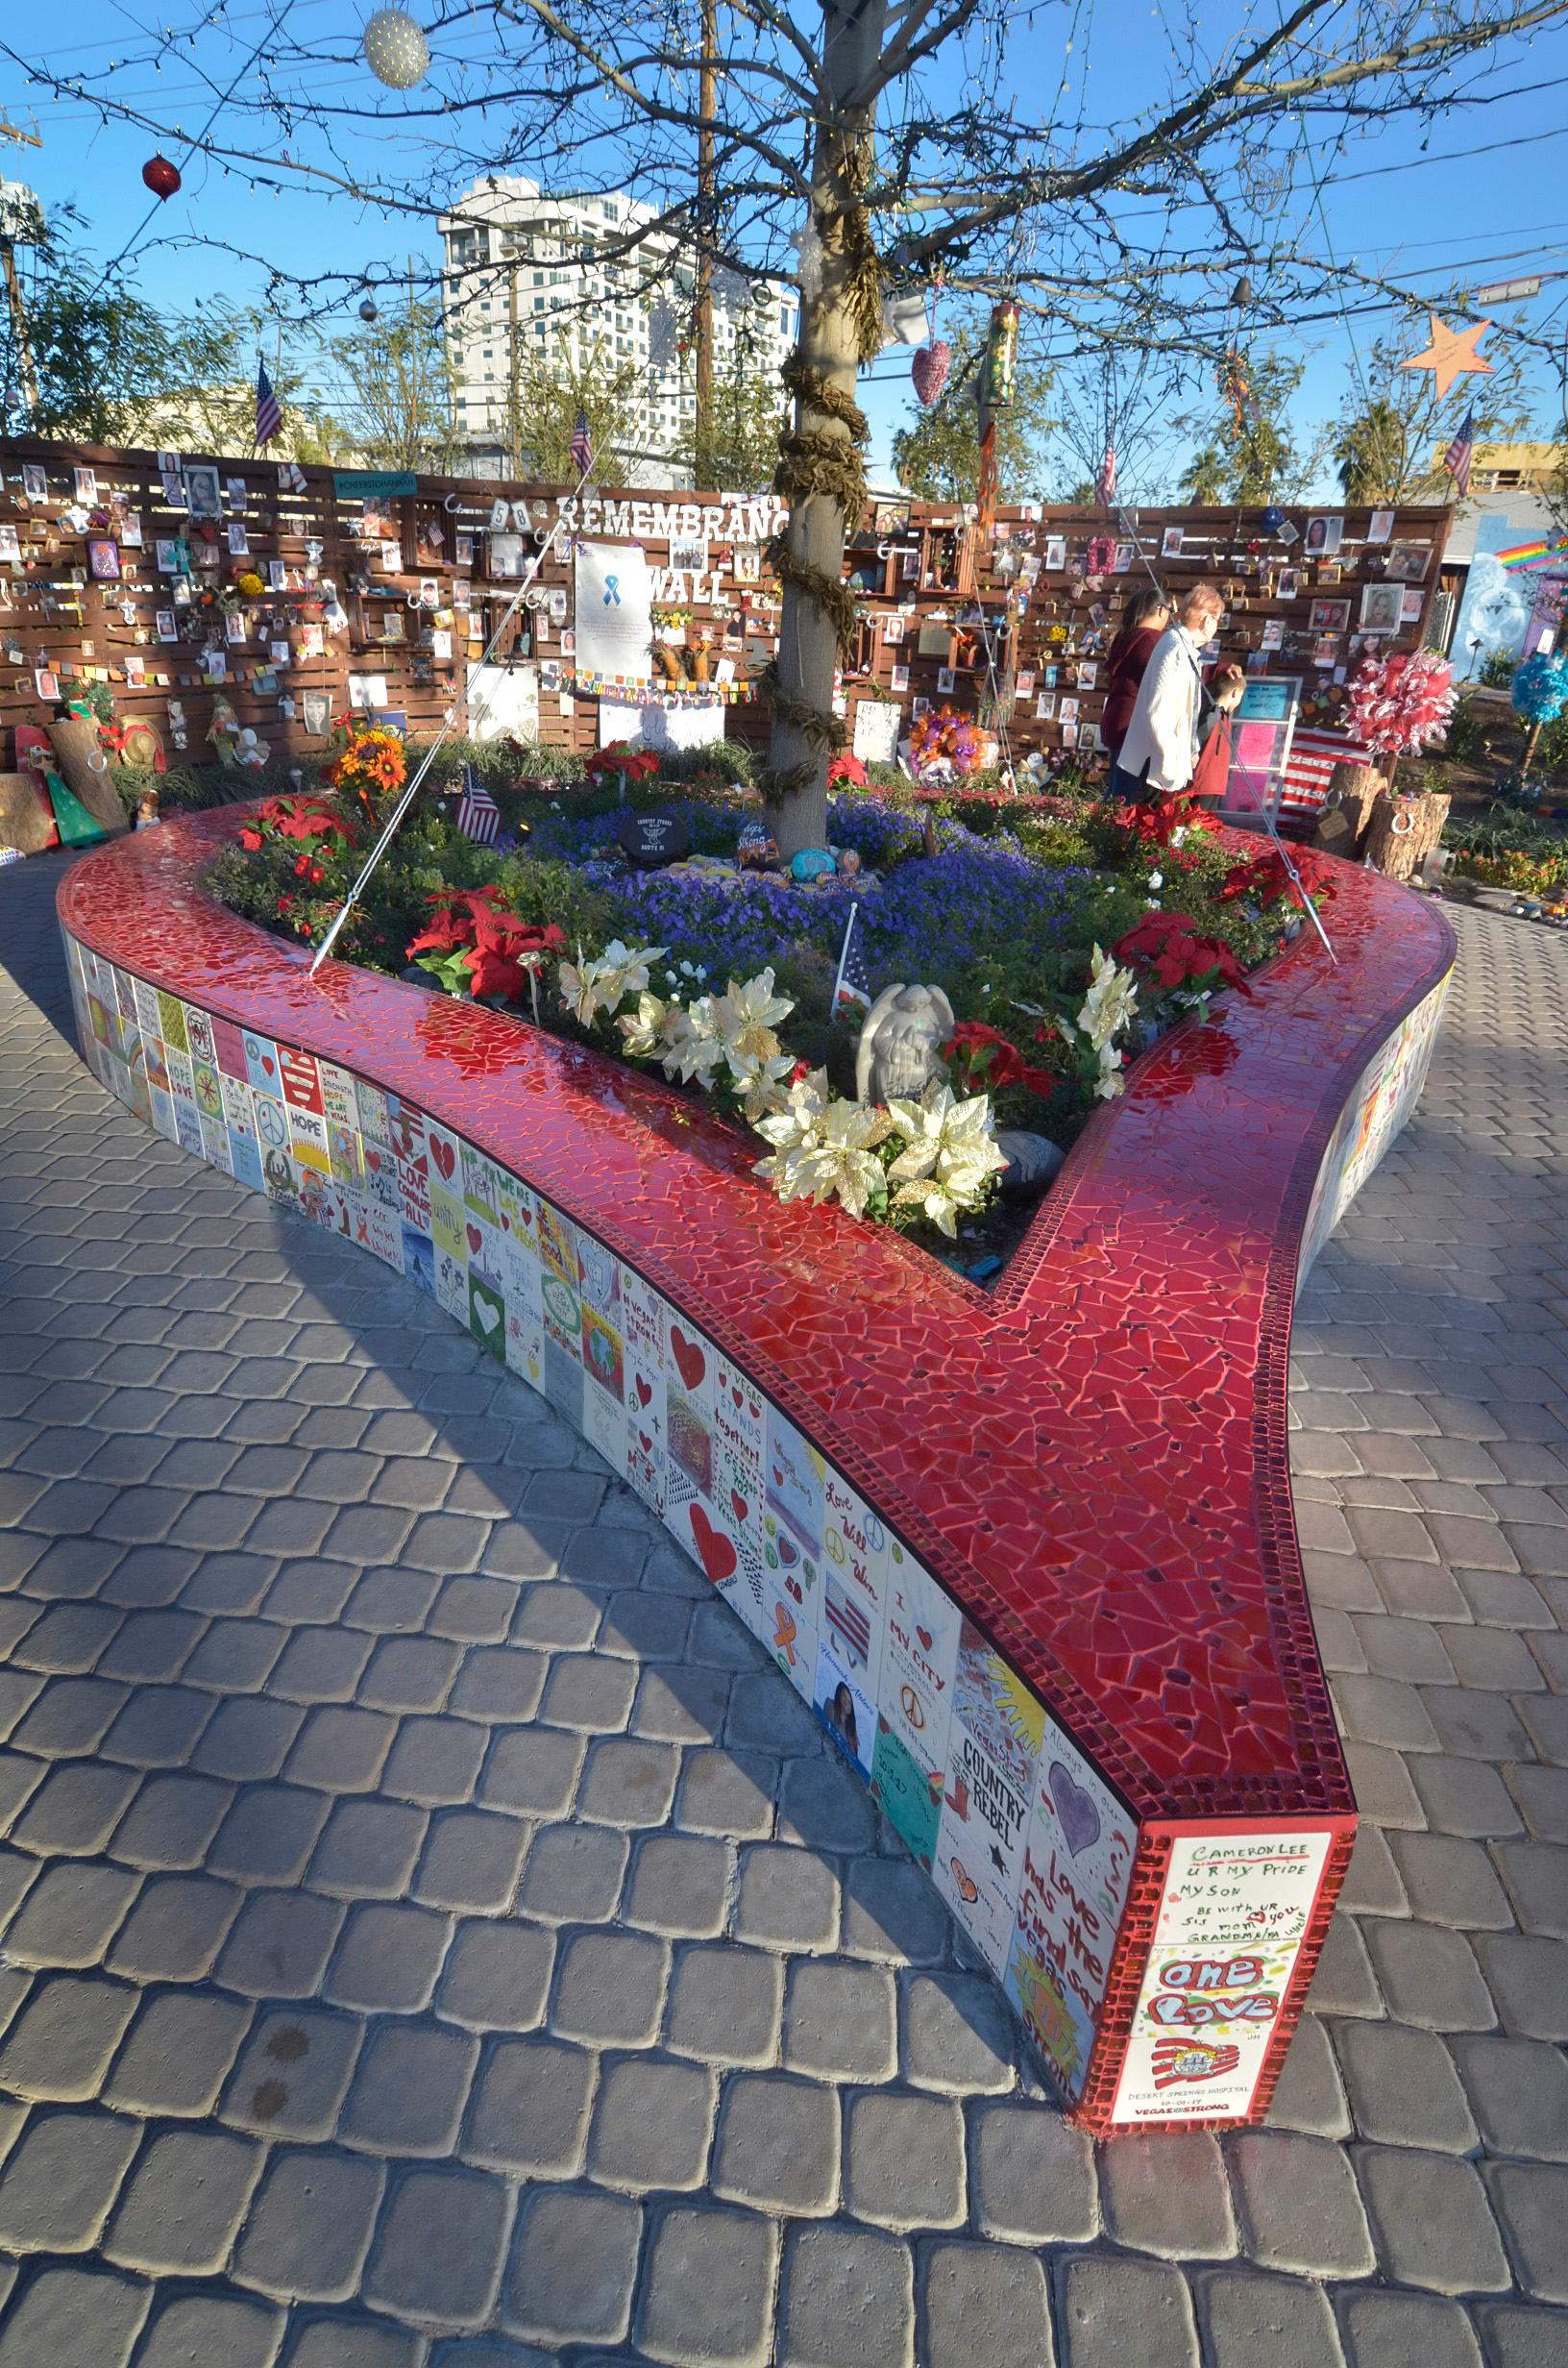 Christmas decorations are shown at the Remembrance Wall in the Community Healing Garden at 1015 S. Casino Center Blvd. in Las Vegas on Tuesday, Dec. 12, 2017. CREDIT: Bill Hughes/Las Vegas News Bureau